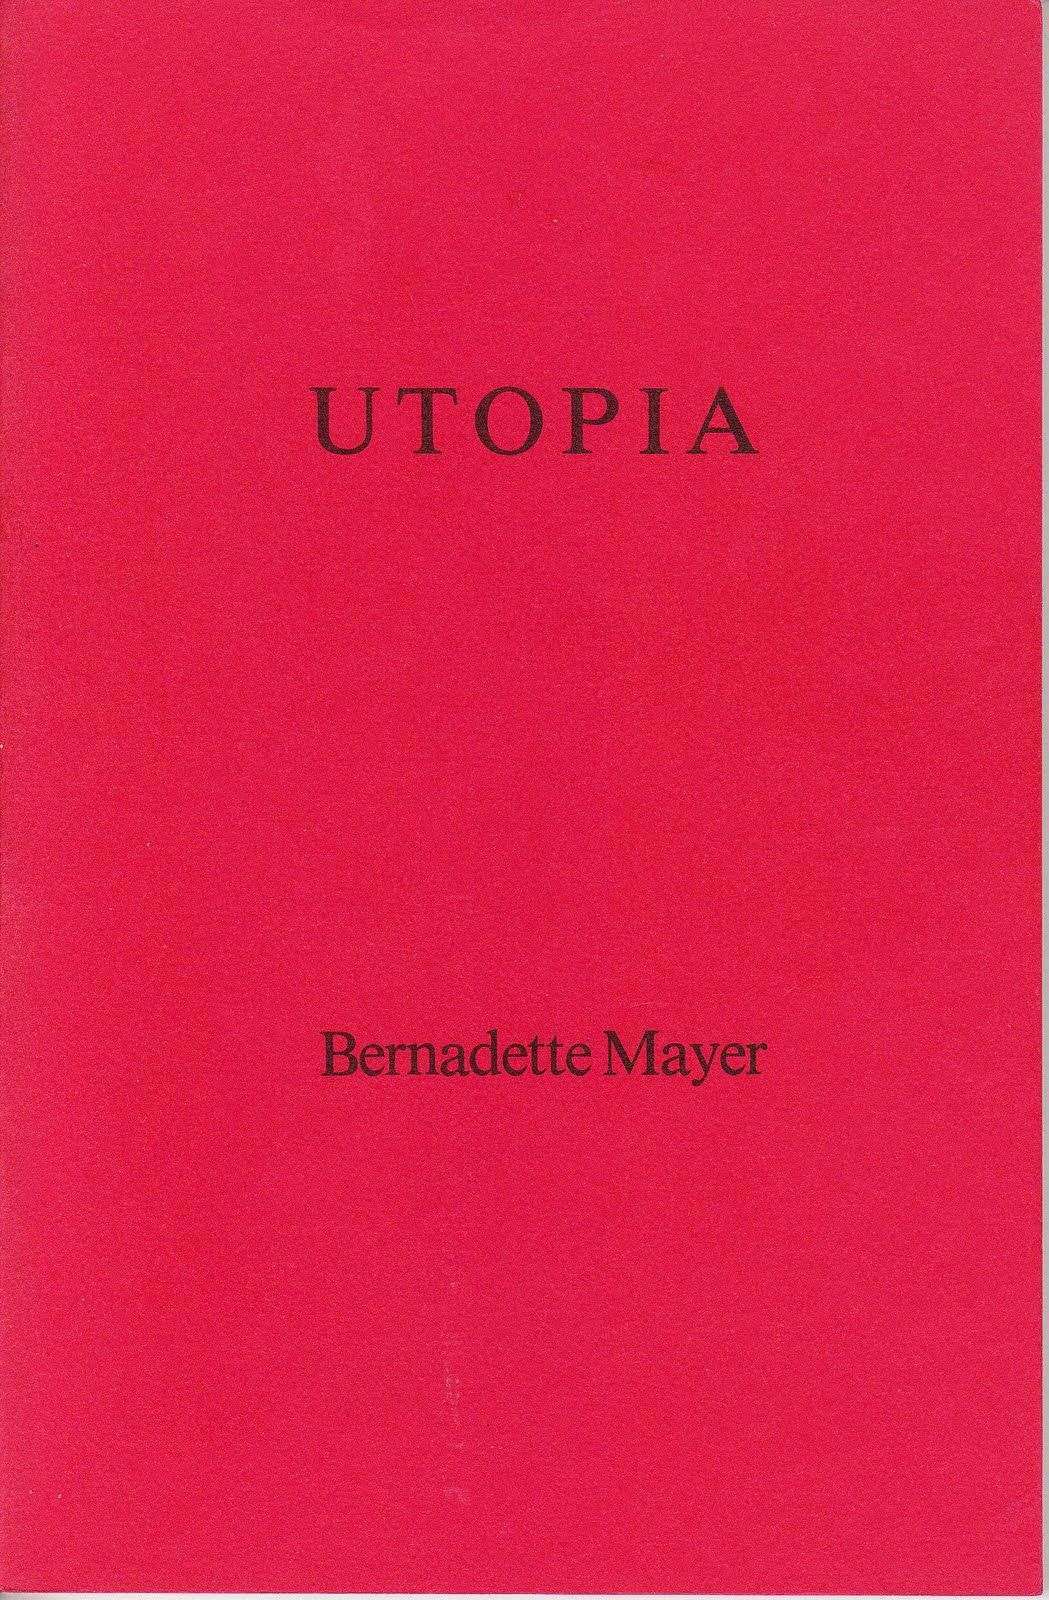 Utopia . United Artists Books, 1984.